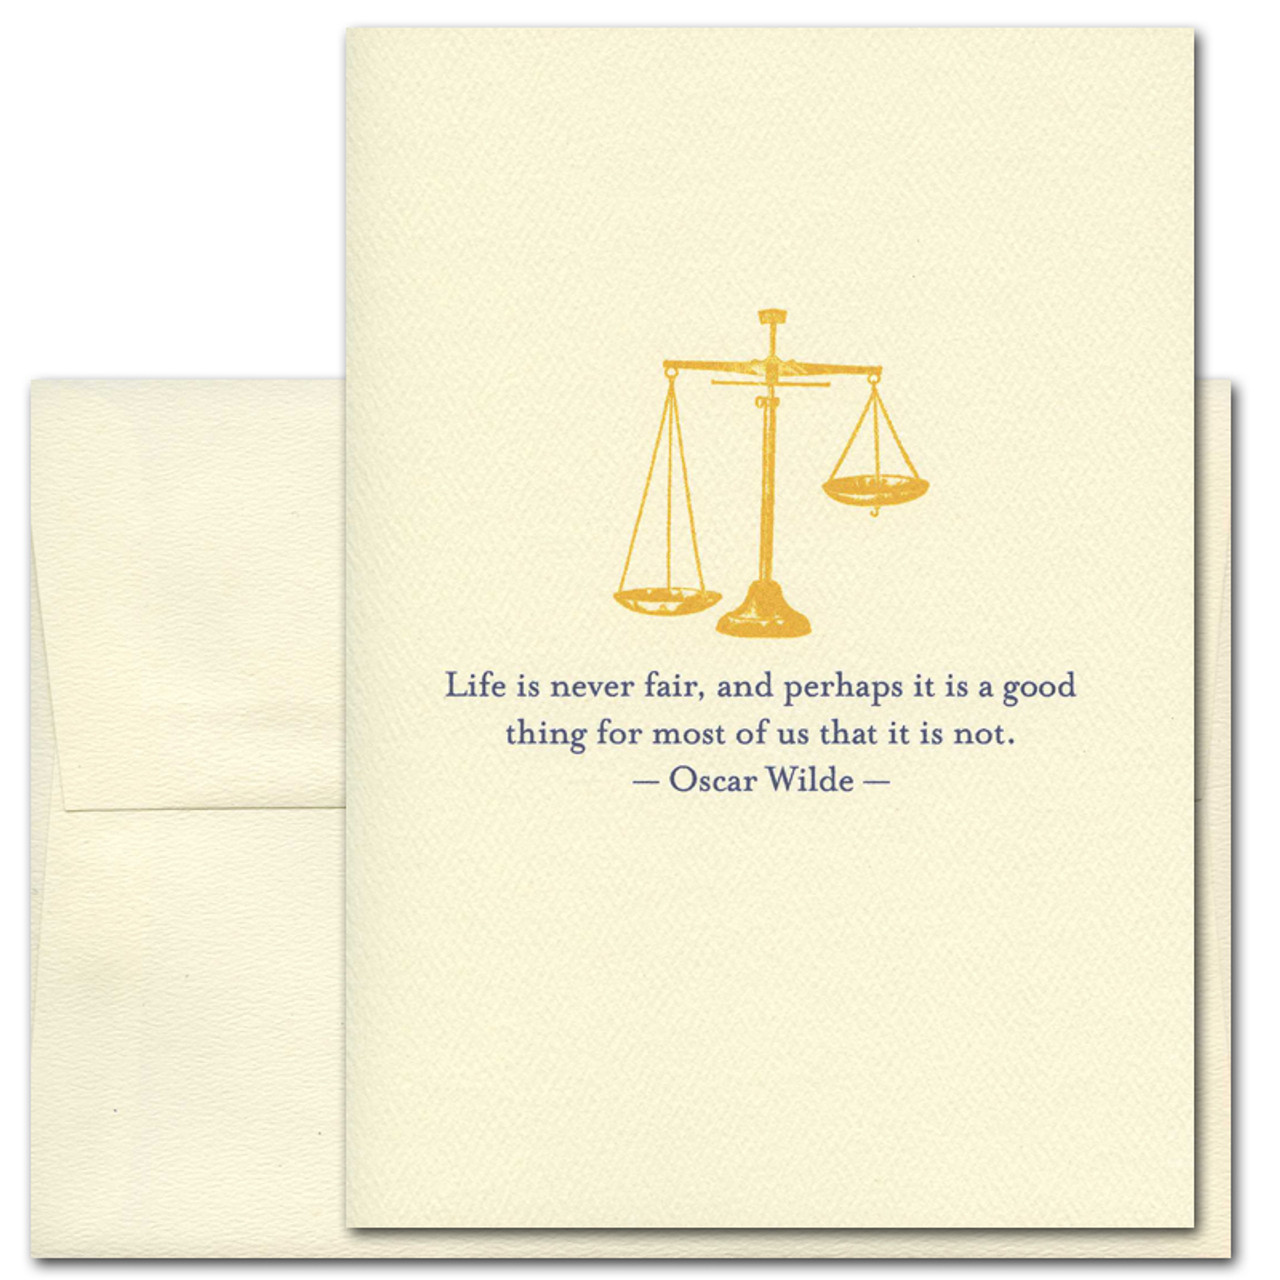 "Quotation Card ""Life is Never Fair: Wilde"" Cover shows gold old fashioned scale with a quote by Oscar Wilde: ""Life is never fair, and perhaps it is a good thing for most of us that it is not."""